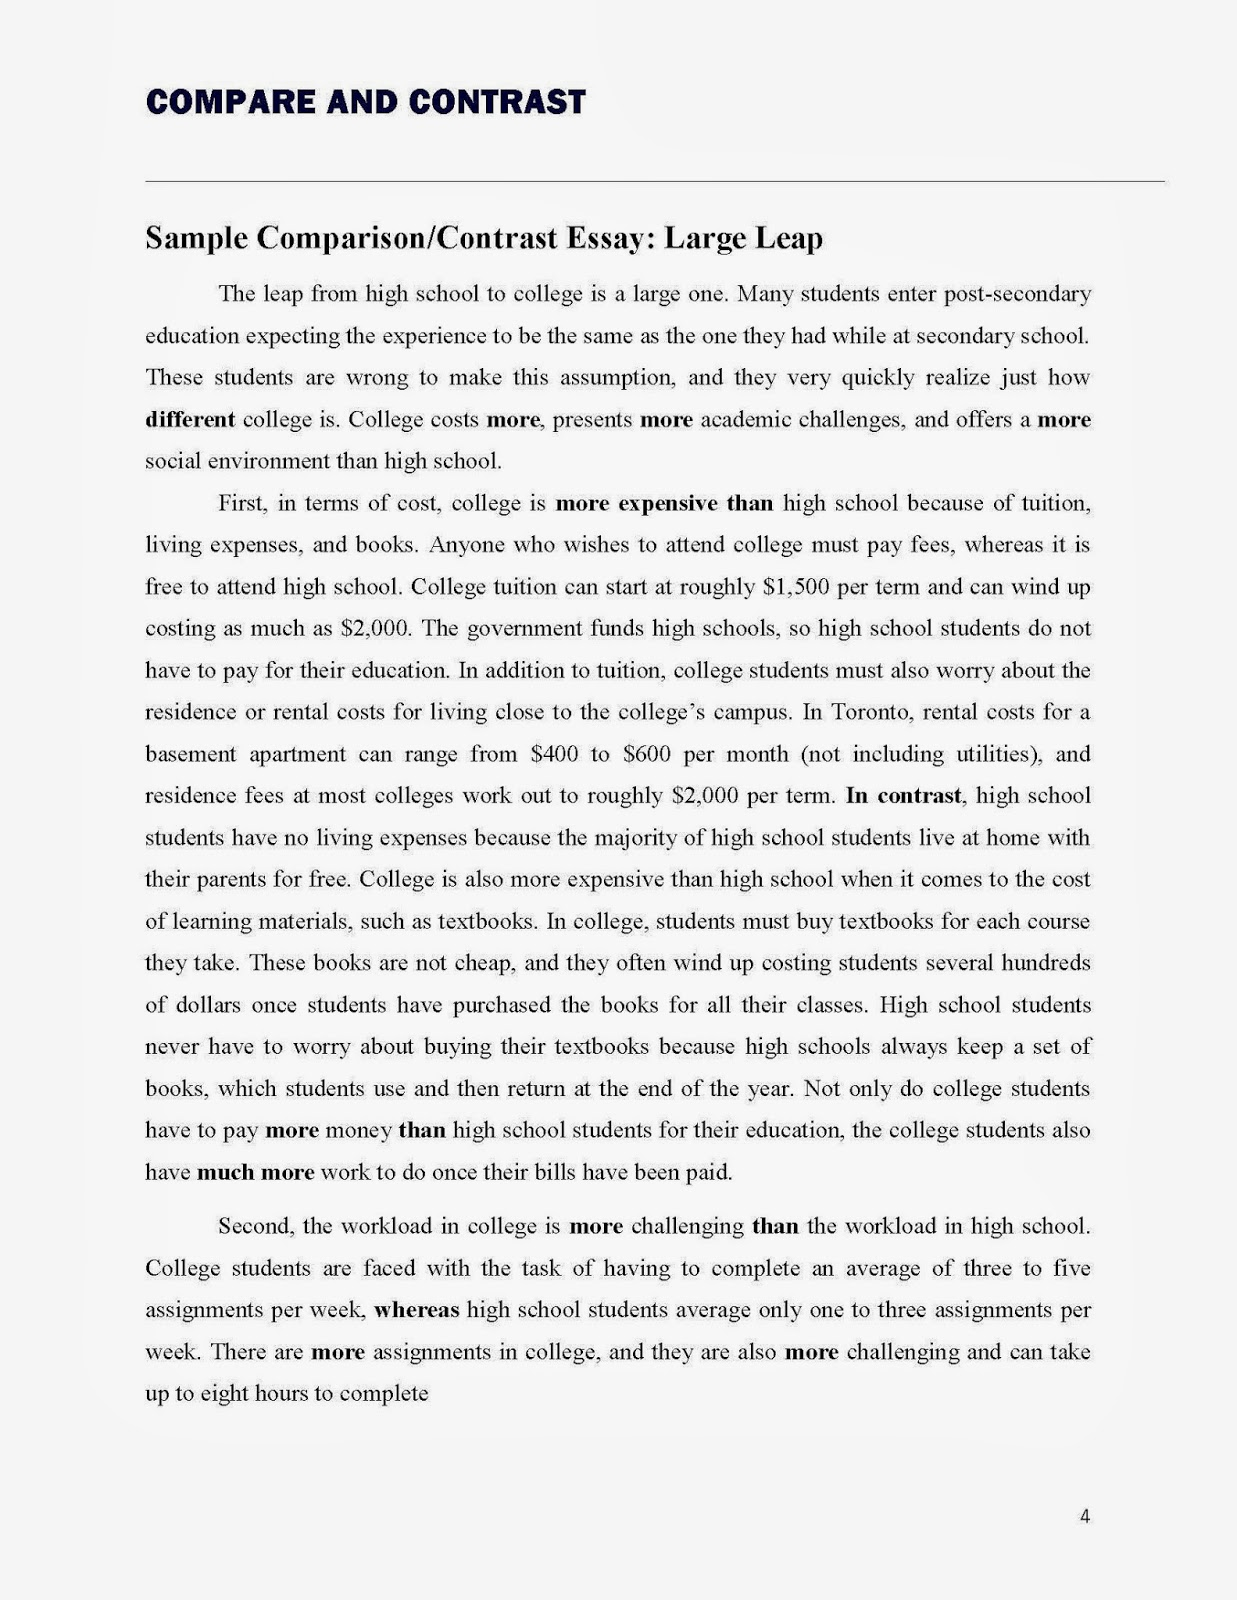 compare and contrast essay tips college comparison essay example  compare contrast essay prompts compare contrast essay writing compare and contrast essay prompt liao ipnodns rucompare